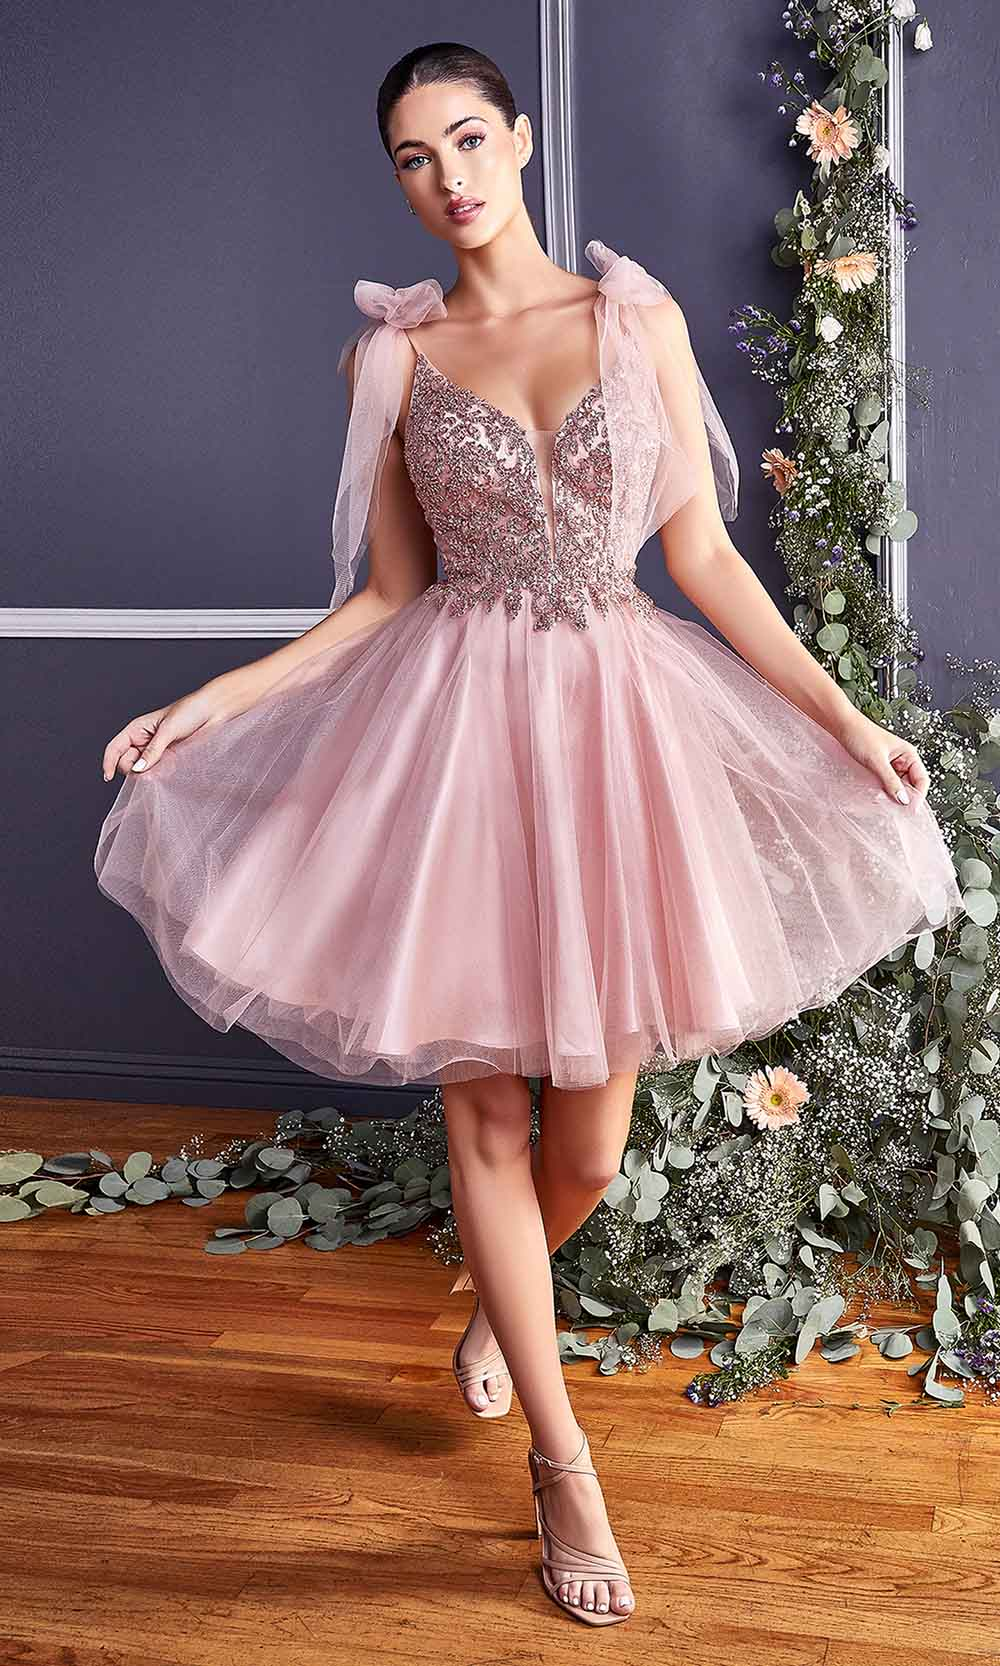 Cinderella Divine - CD0174 Bow Accented Beaded A-Line Dress In Pink